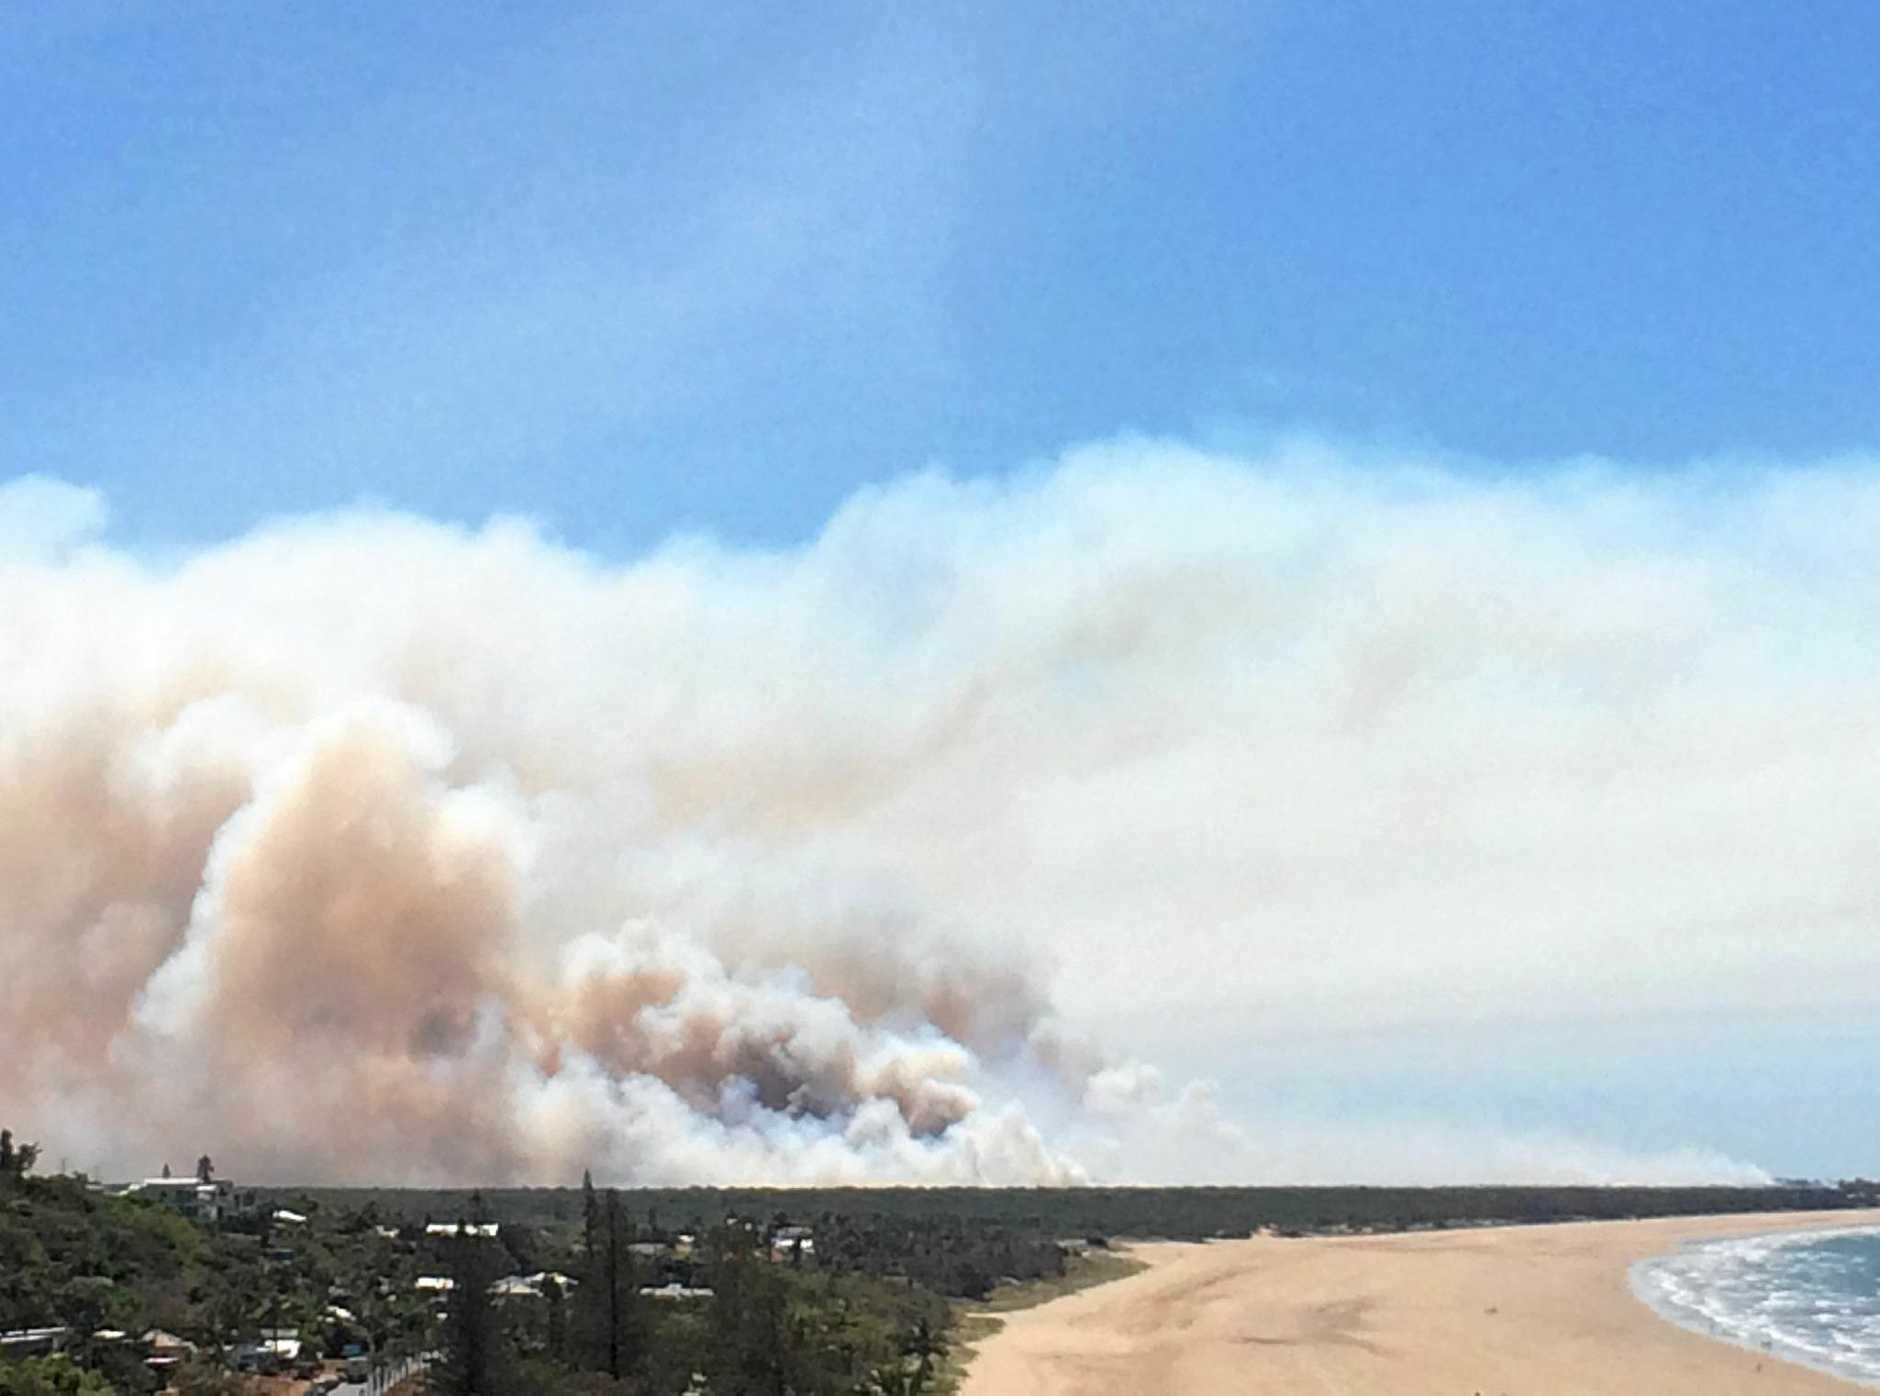 SMOKE HAZE: Smoke billowing from a bushfire near Farnborough Beach.